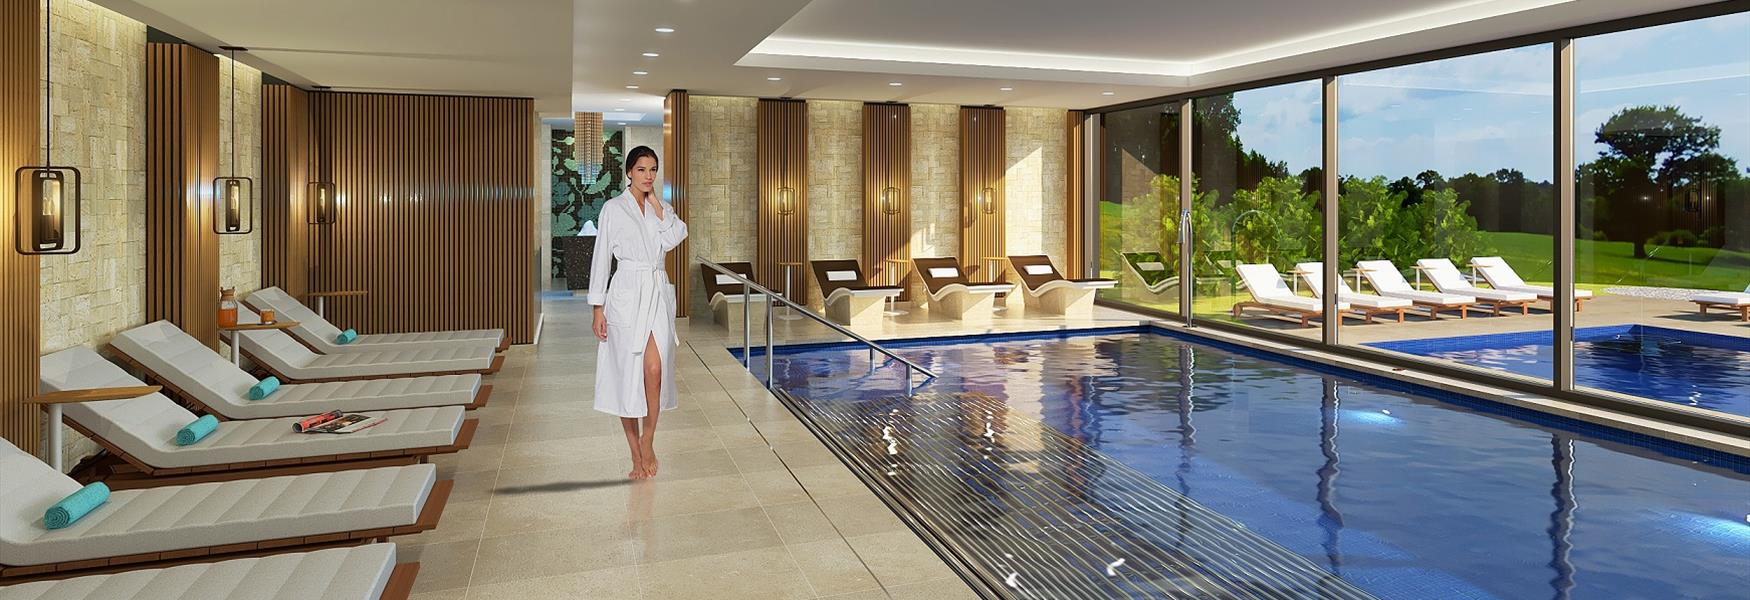 Spa Hotels in Cheshire